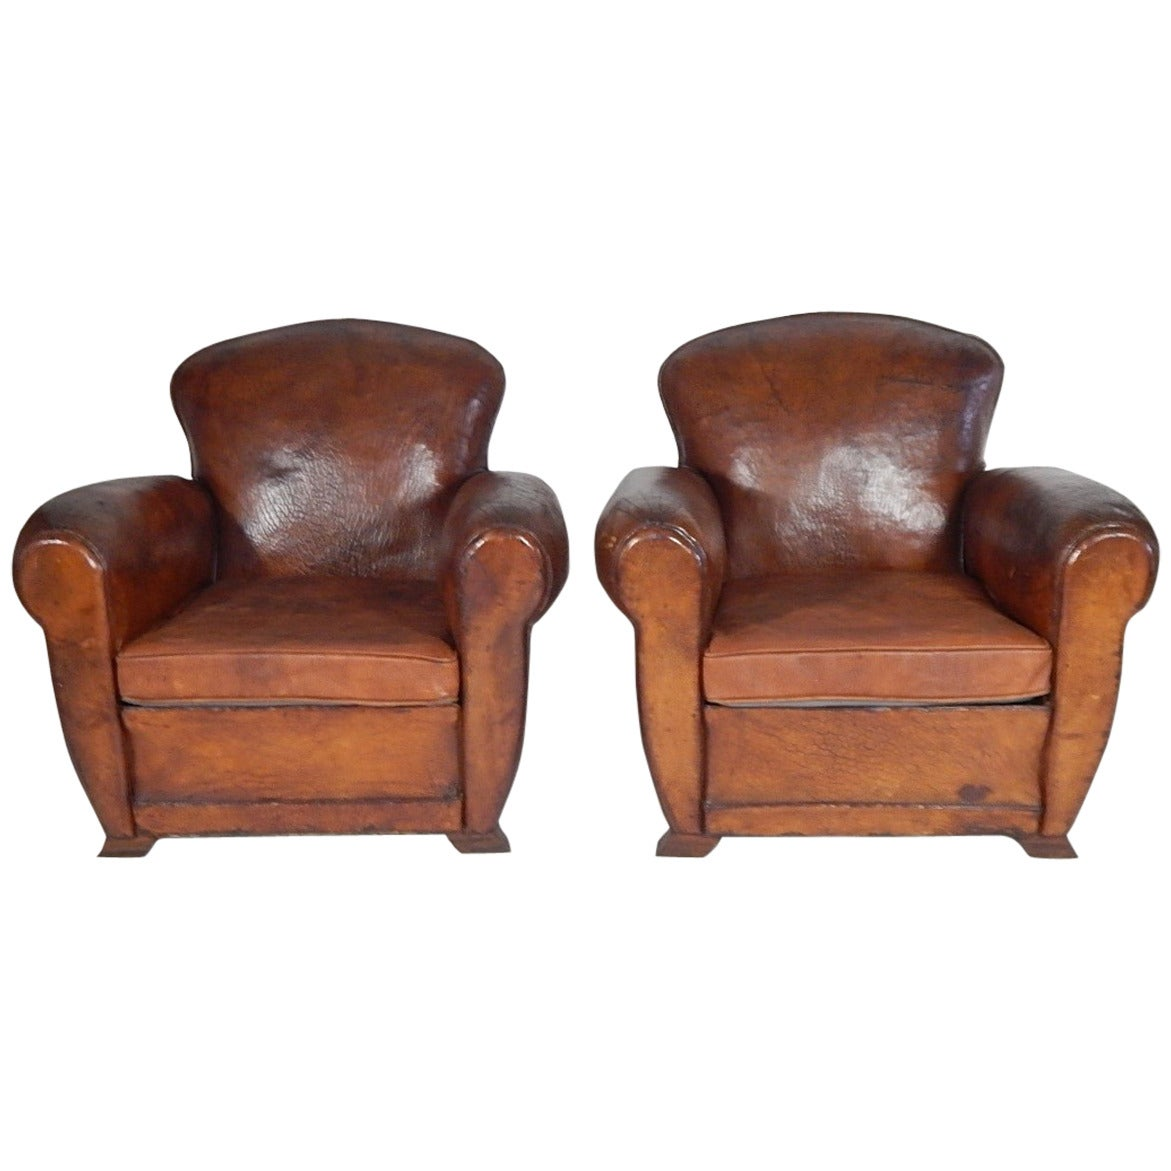 Pair Of French Art Deco Leather Club Chairs Circa 1930 At 1stdibs